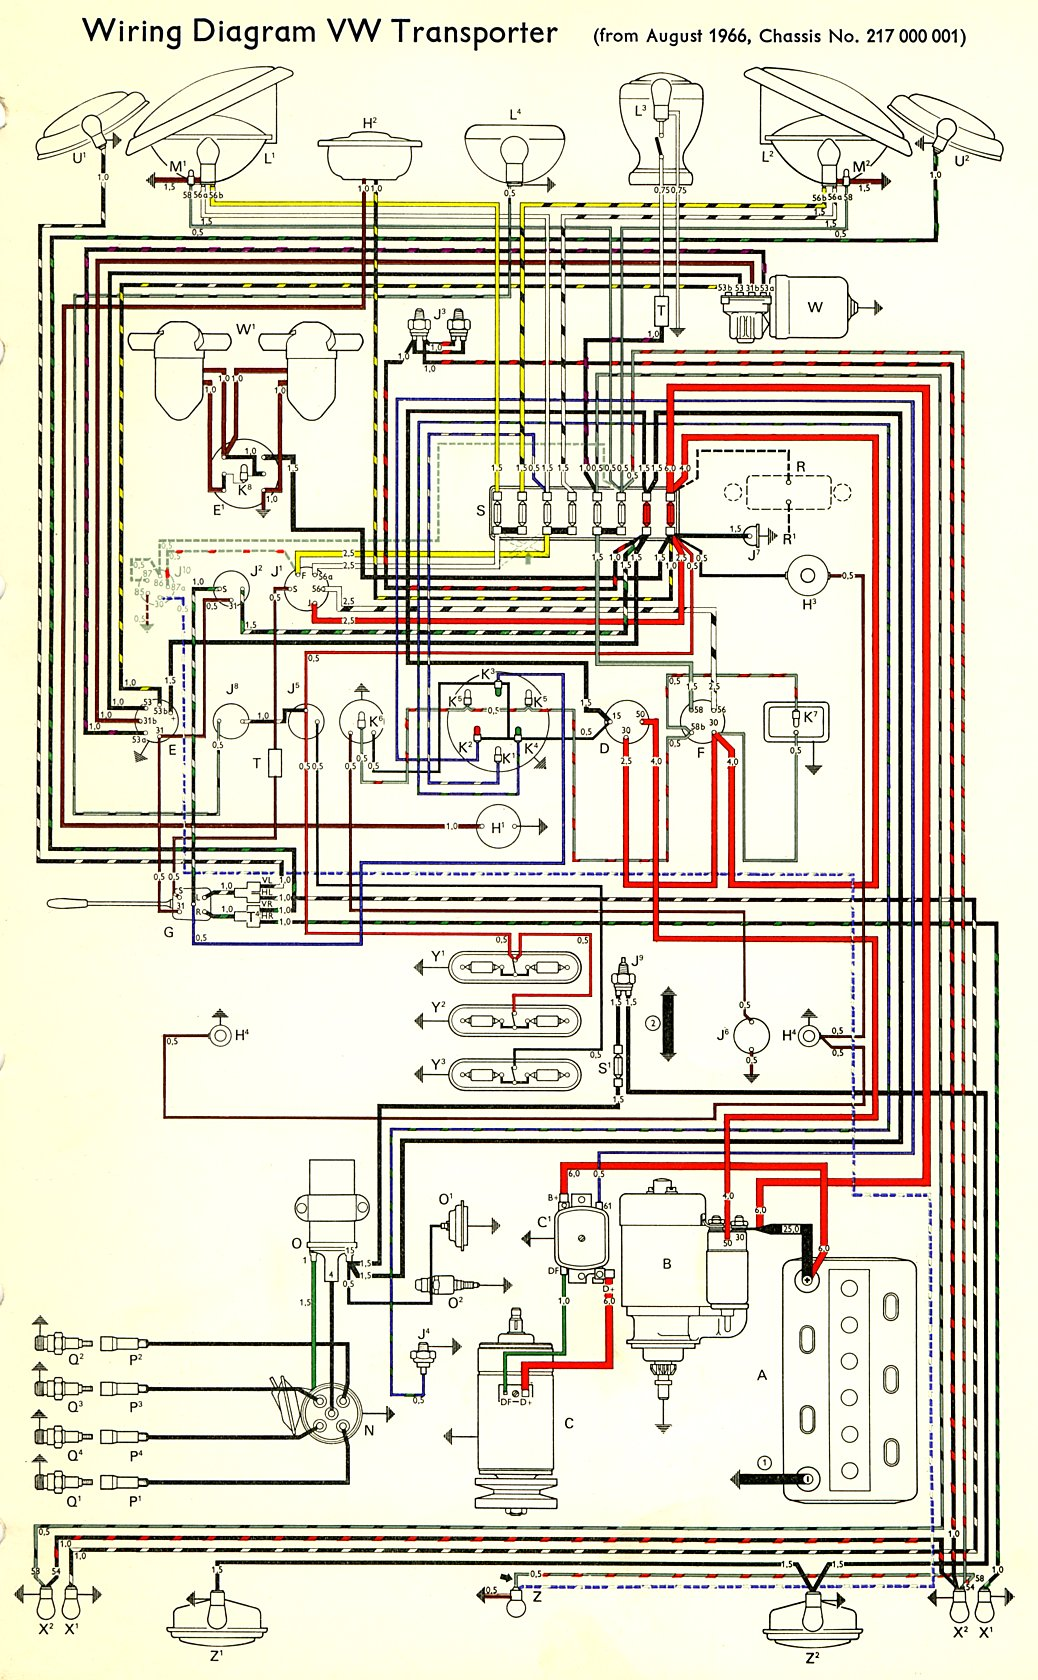 1967 Bus Wiring Diagram Thegoldenbug Com 1962 VW Wiring Diagram Bus Wiring  Diagram